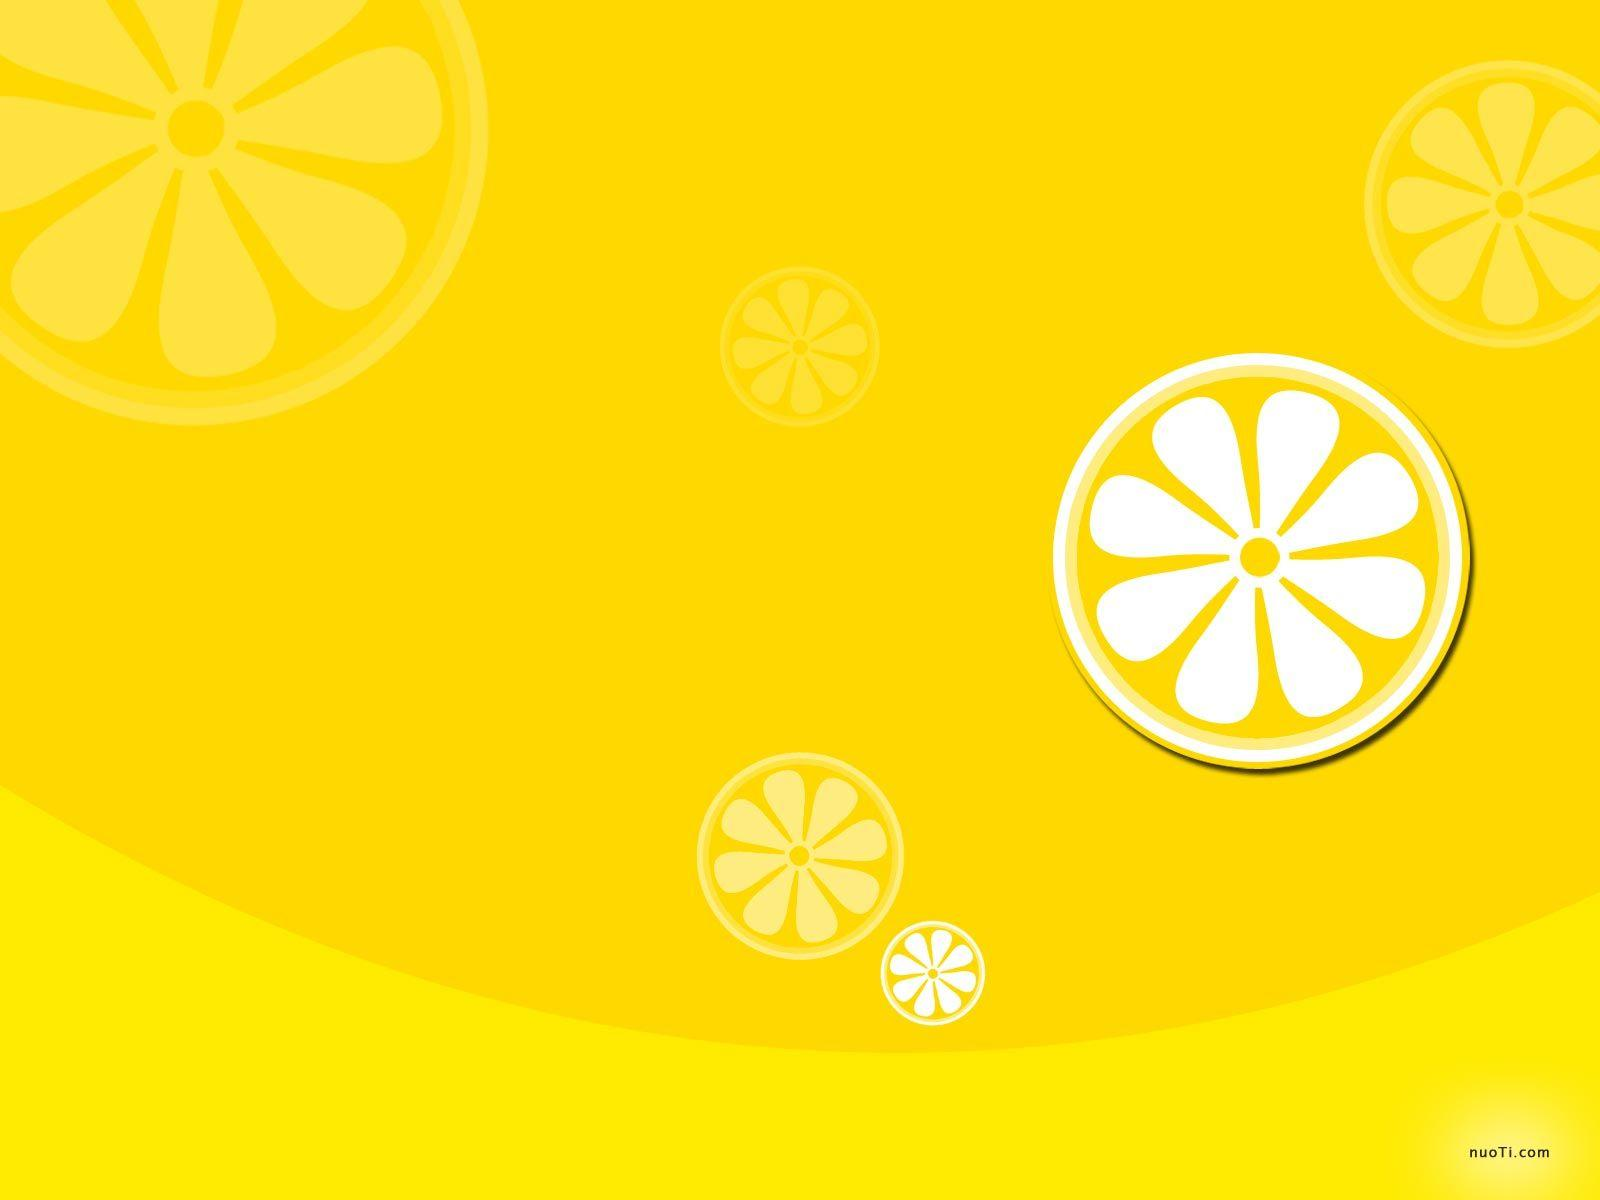 Yellow Wallpapers - Yellow Wallpaper (34512621) - Fanpop